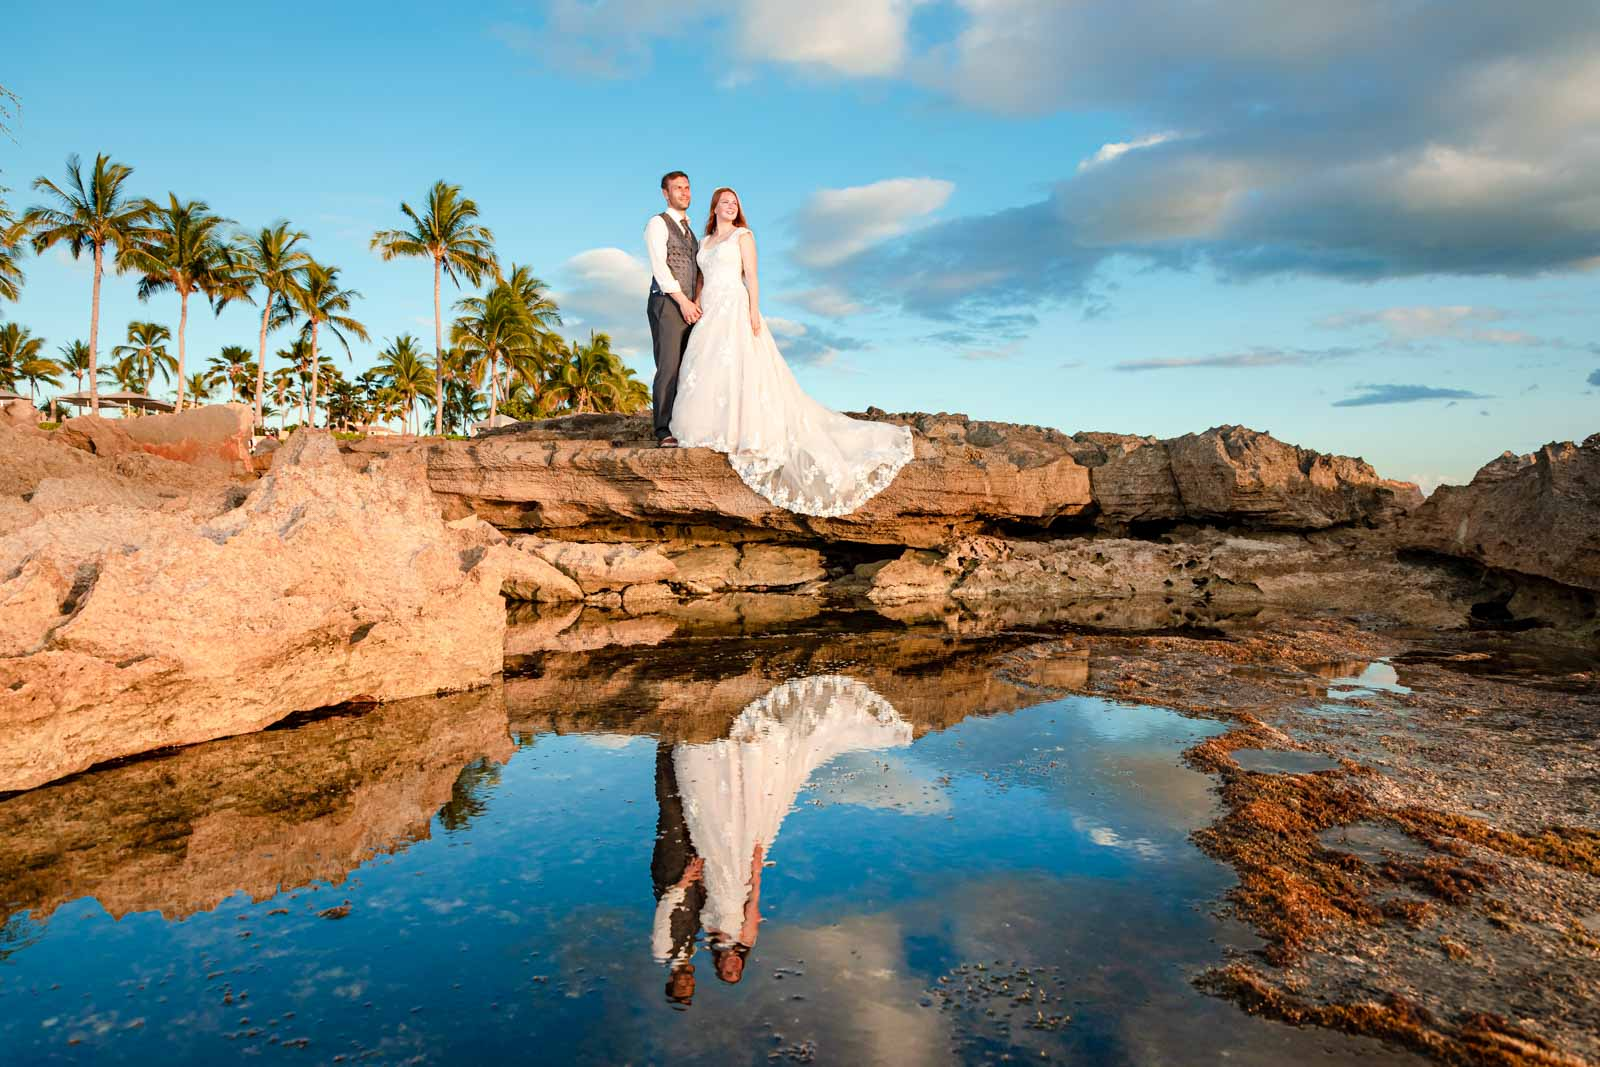 bride and groom portrait sunset tidepool beach oahu hawaii wedding